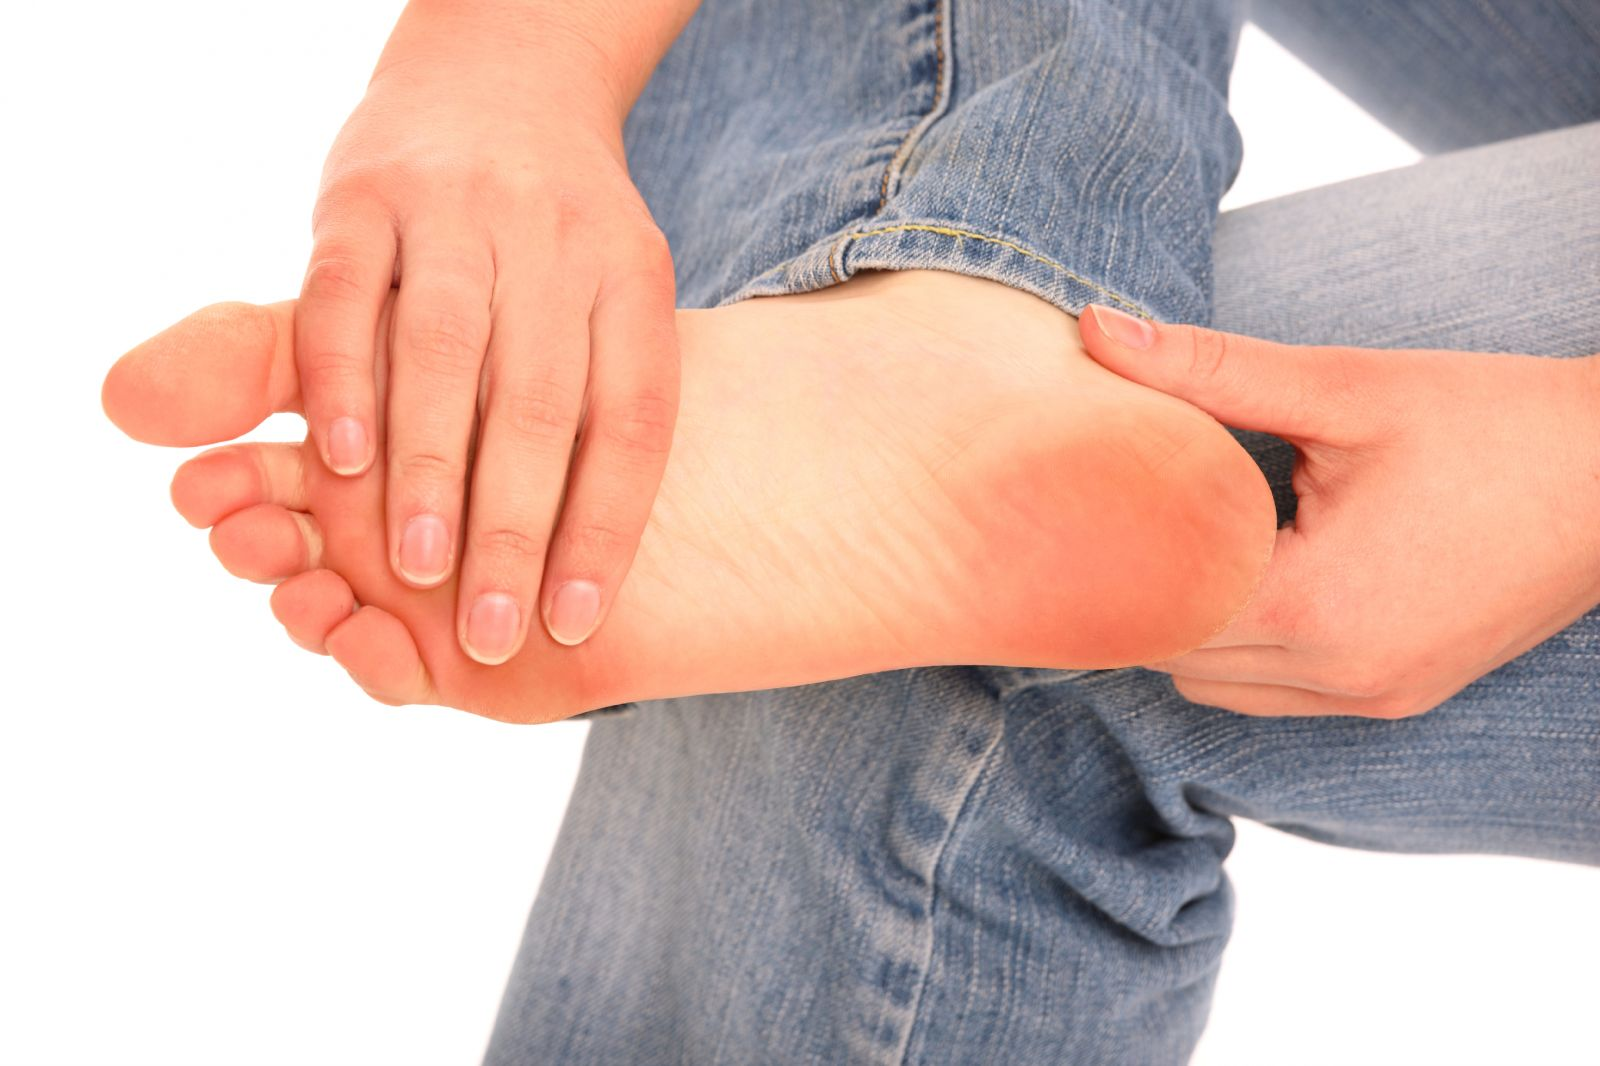 Finding relief from calluses and corns - Harvard Health